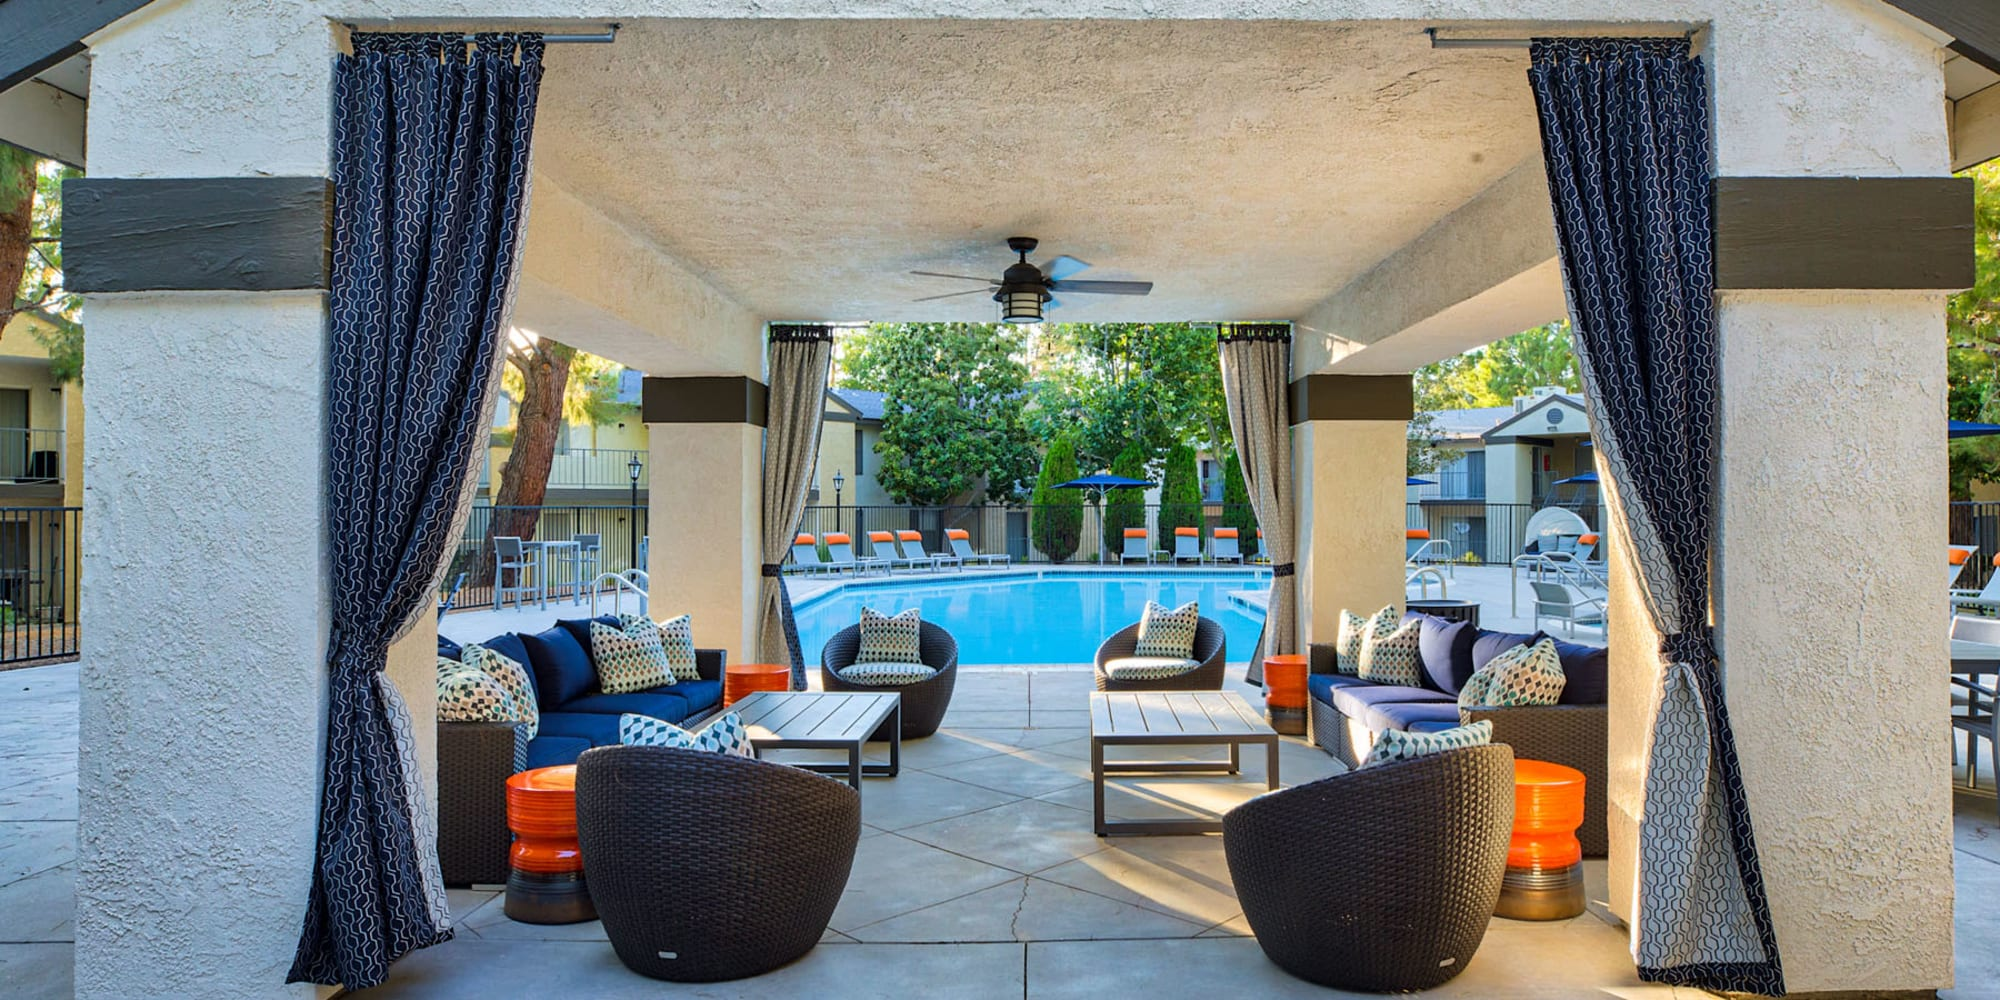 Covered poolside lounge with a ceiling fan overhead at Mountain Vista in Victorville, California